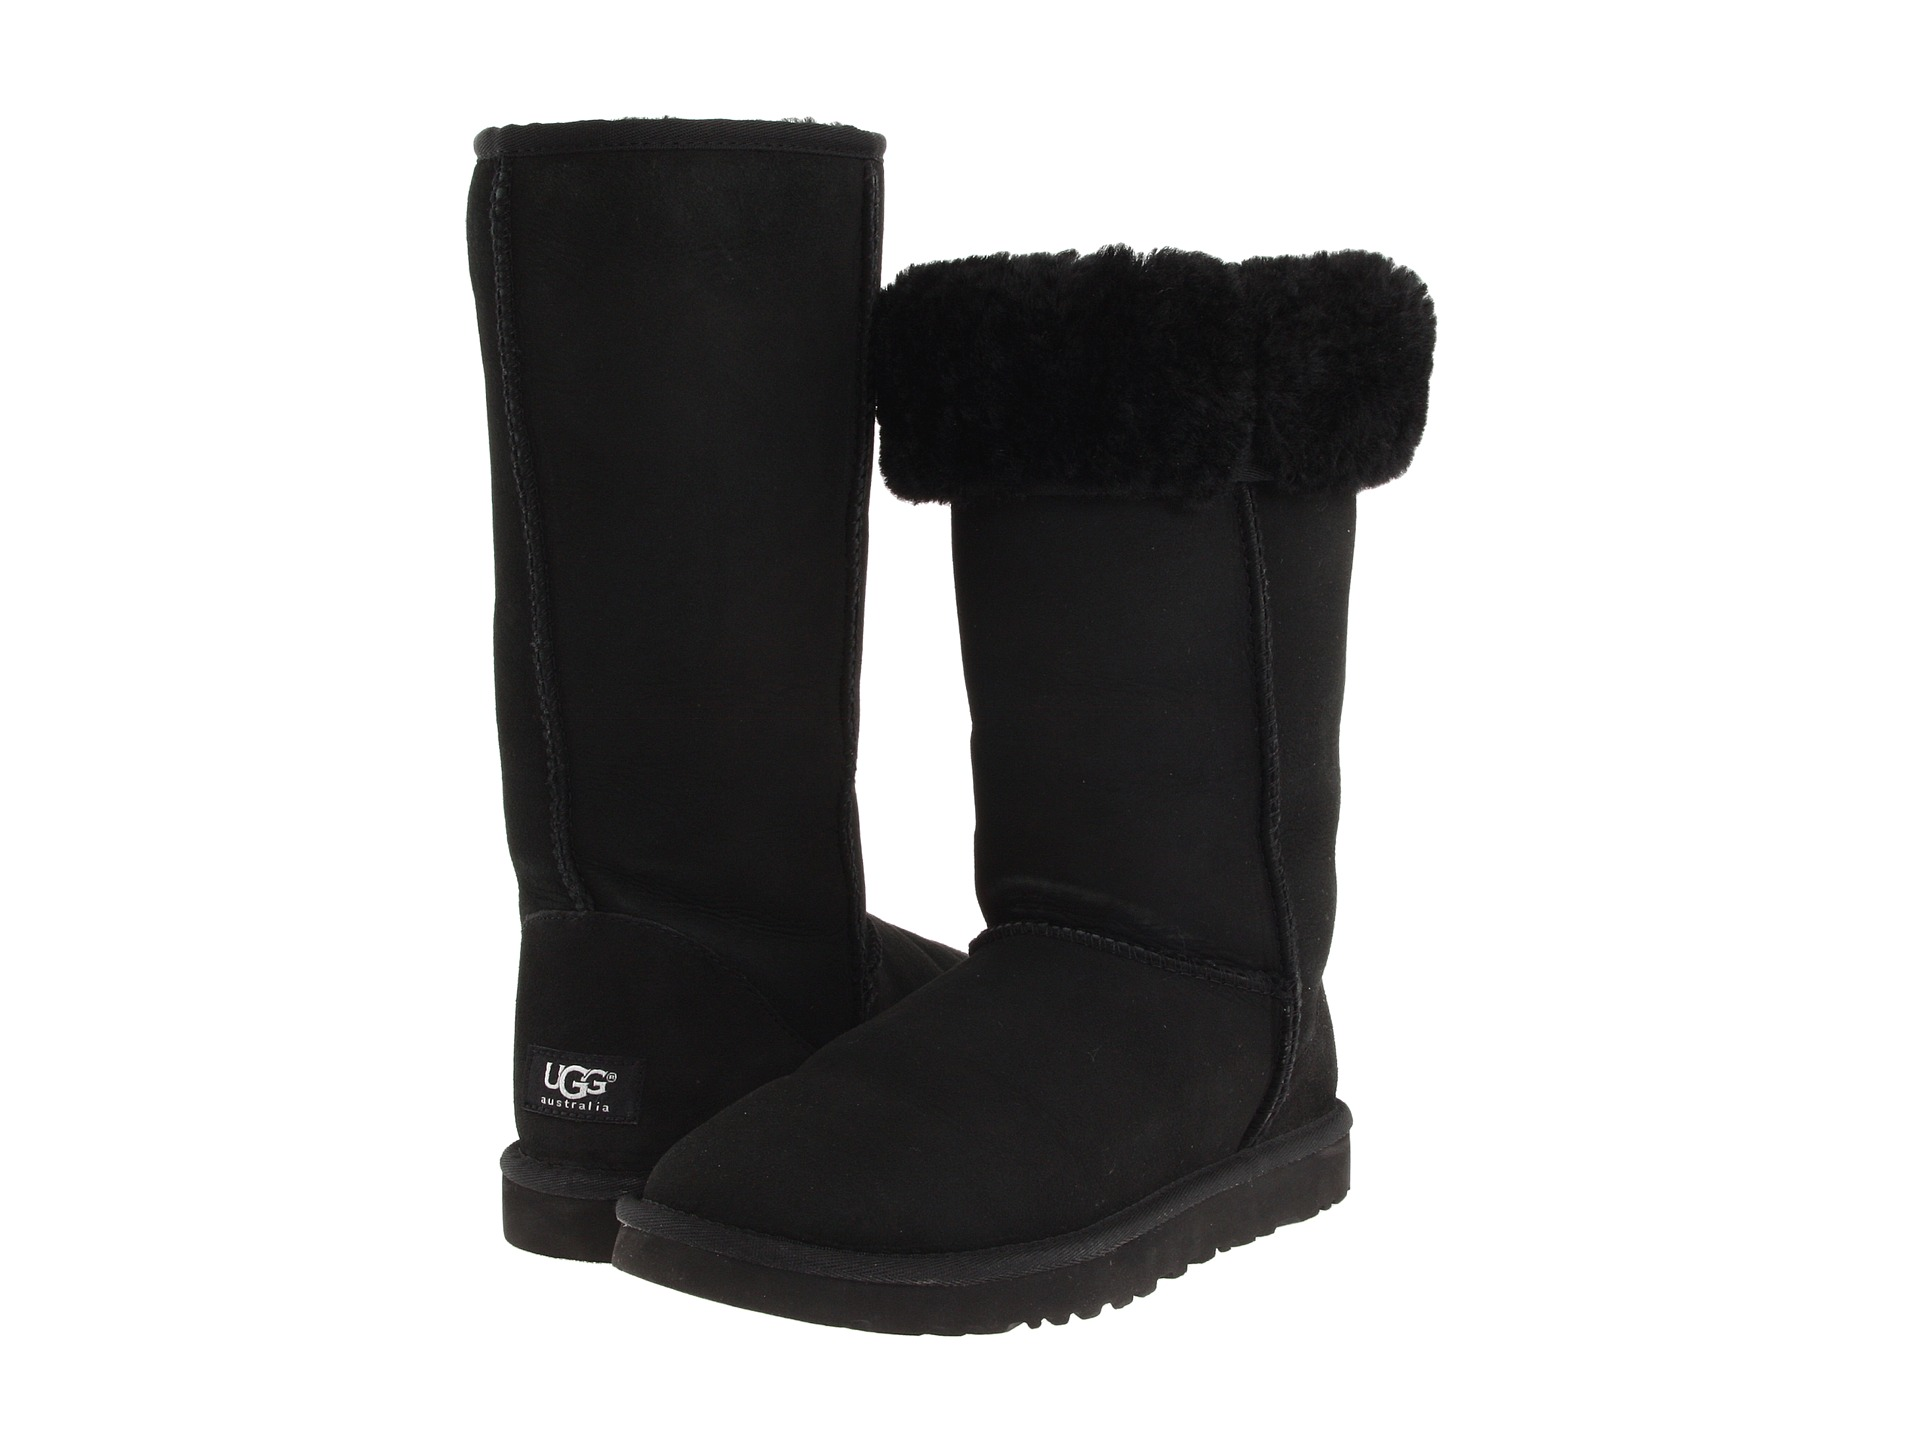 Man Made Ugg Style Boots